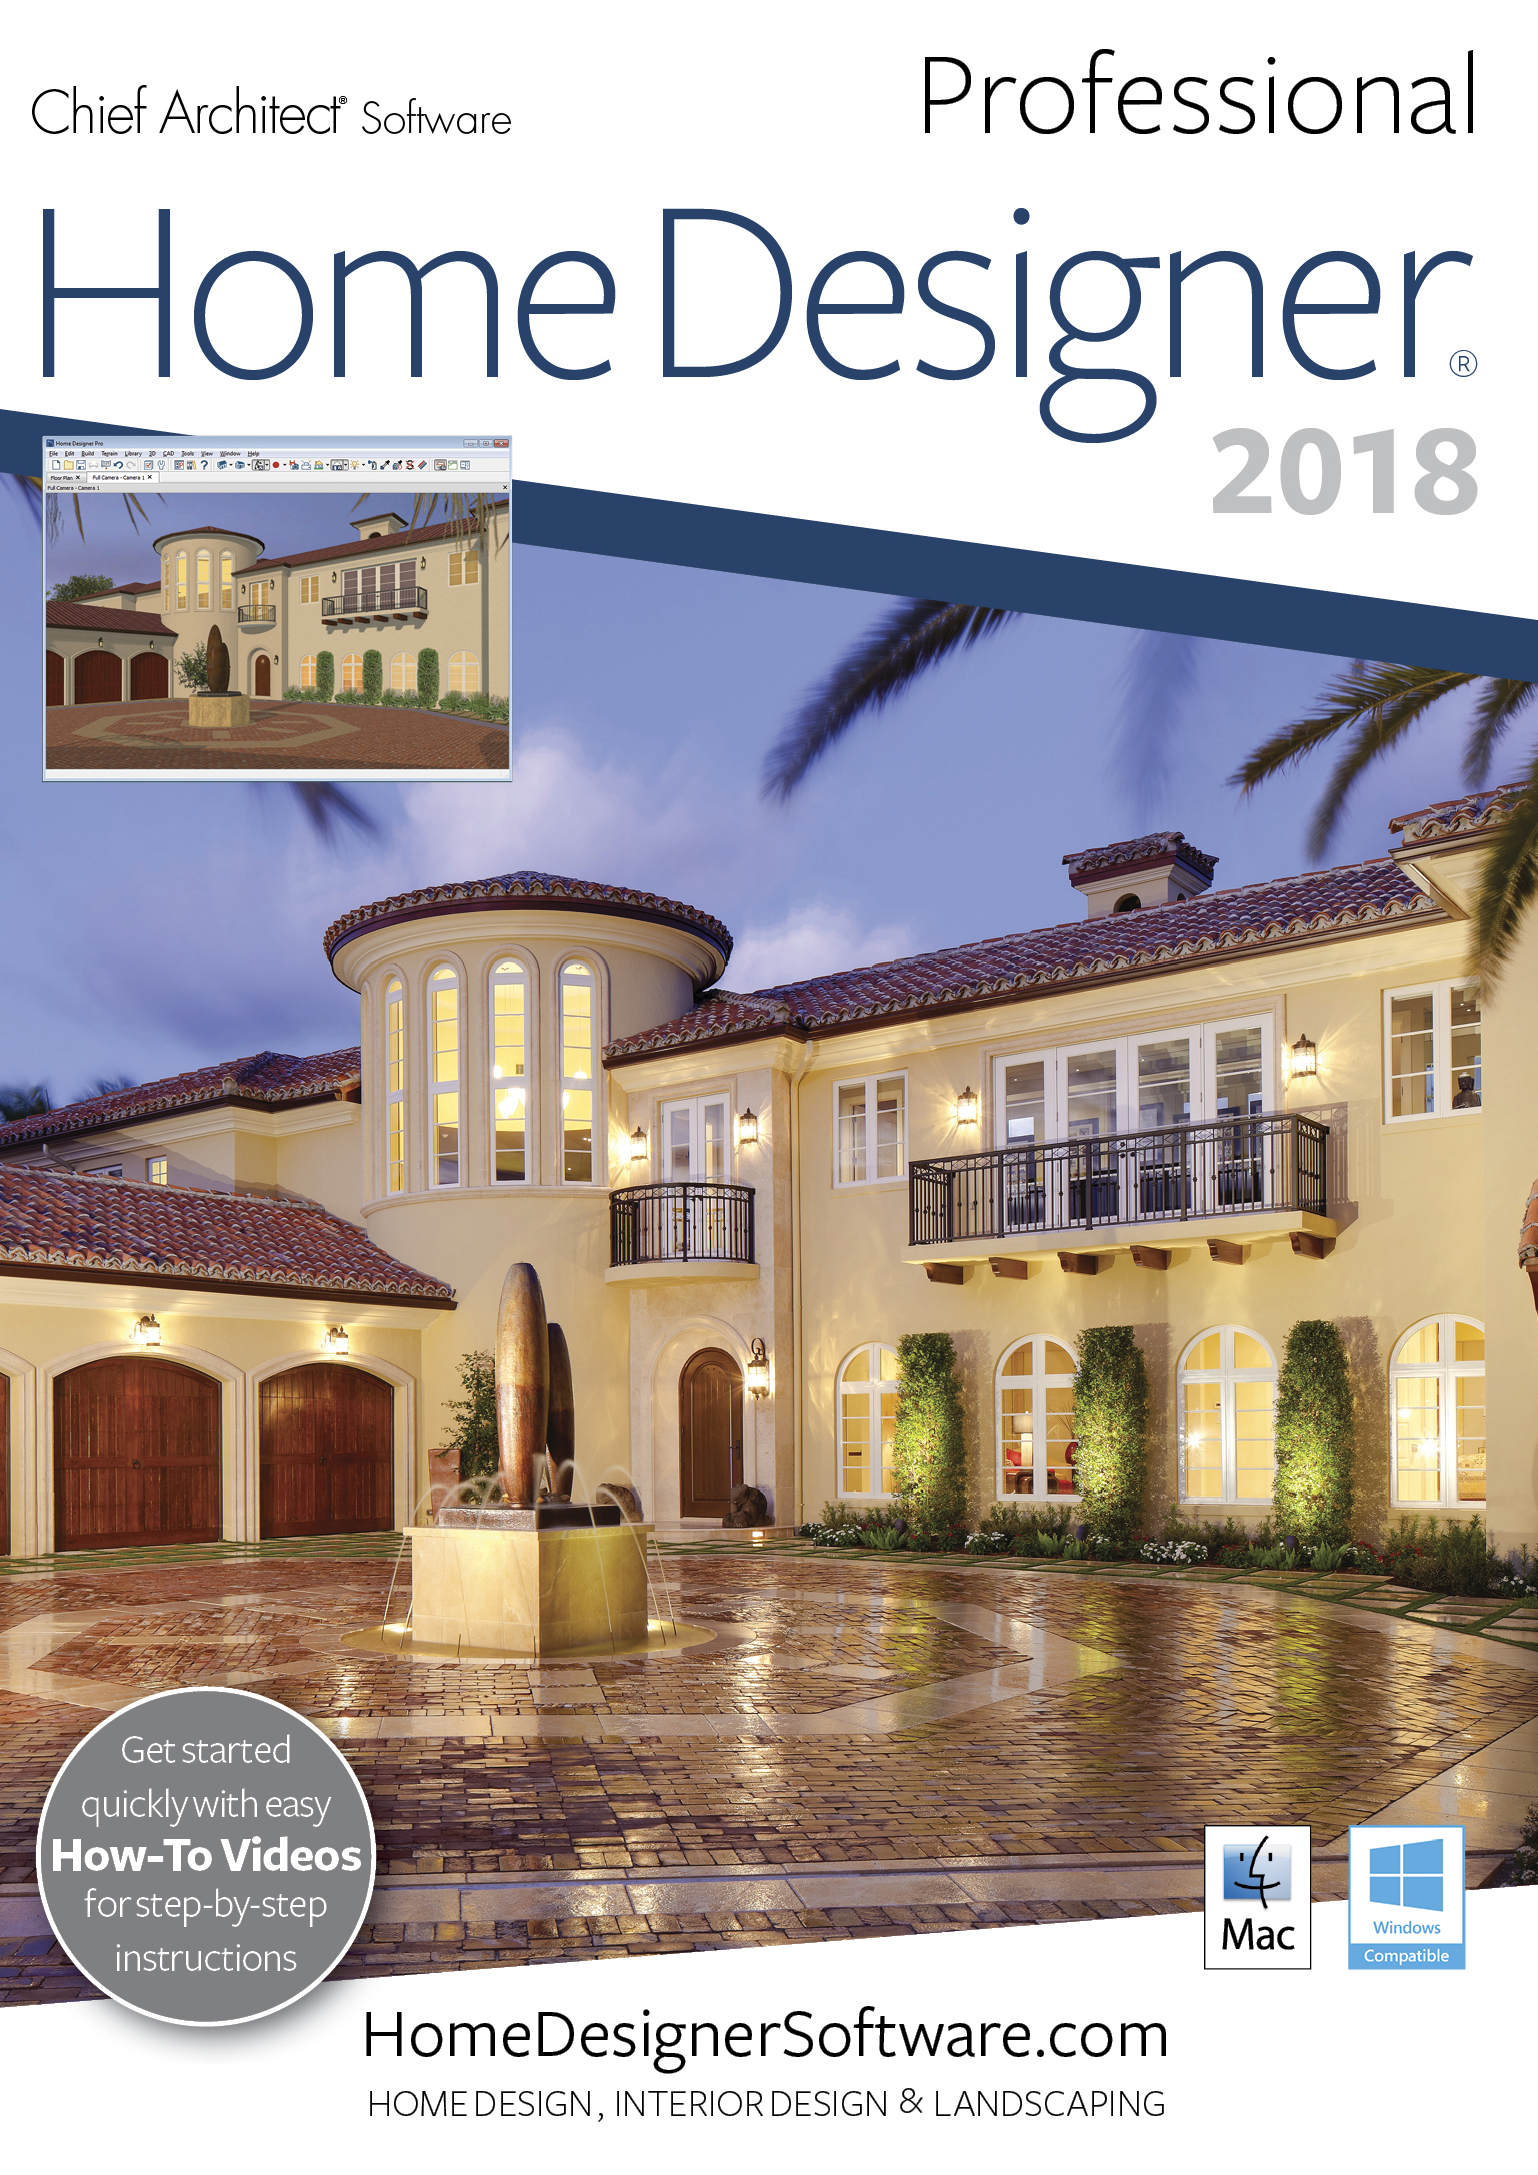 Home Designer Pro 2018 - Mac Download [Download]